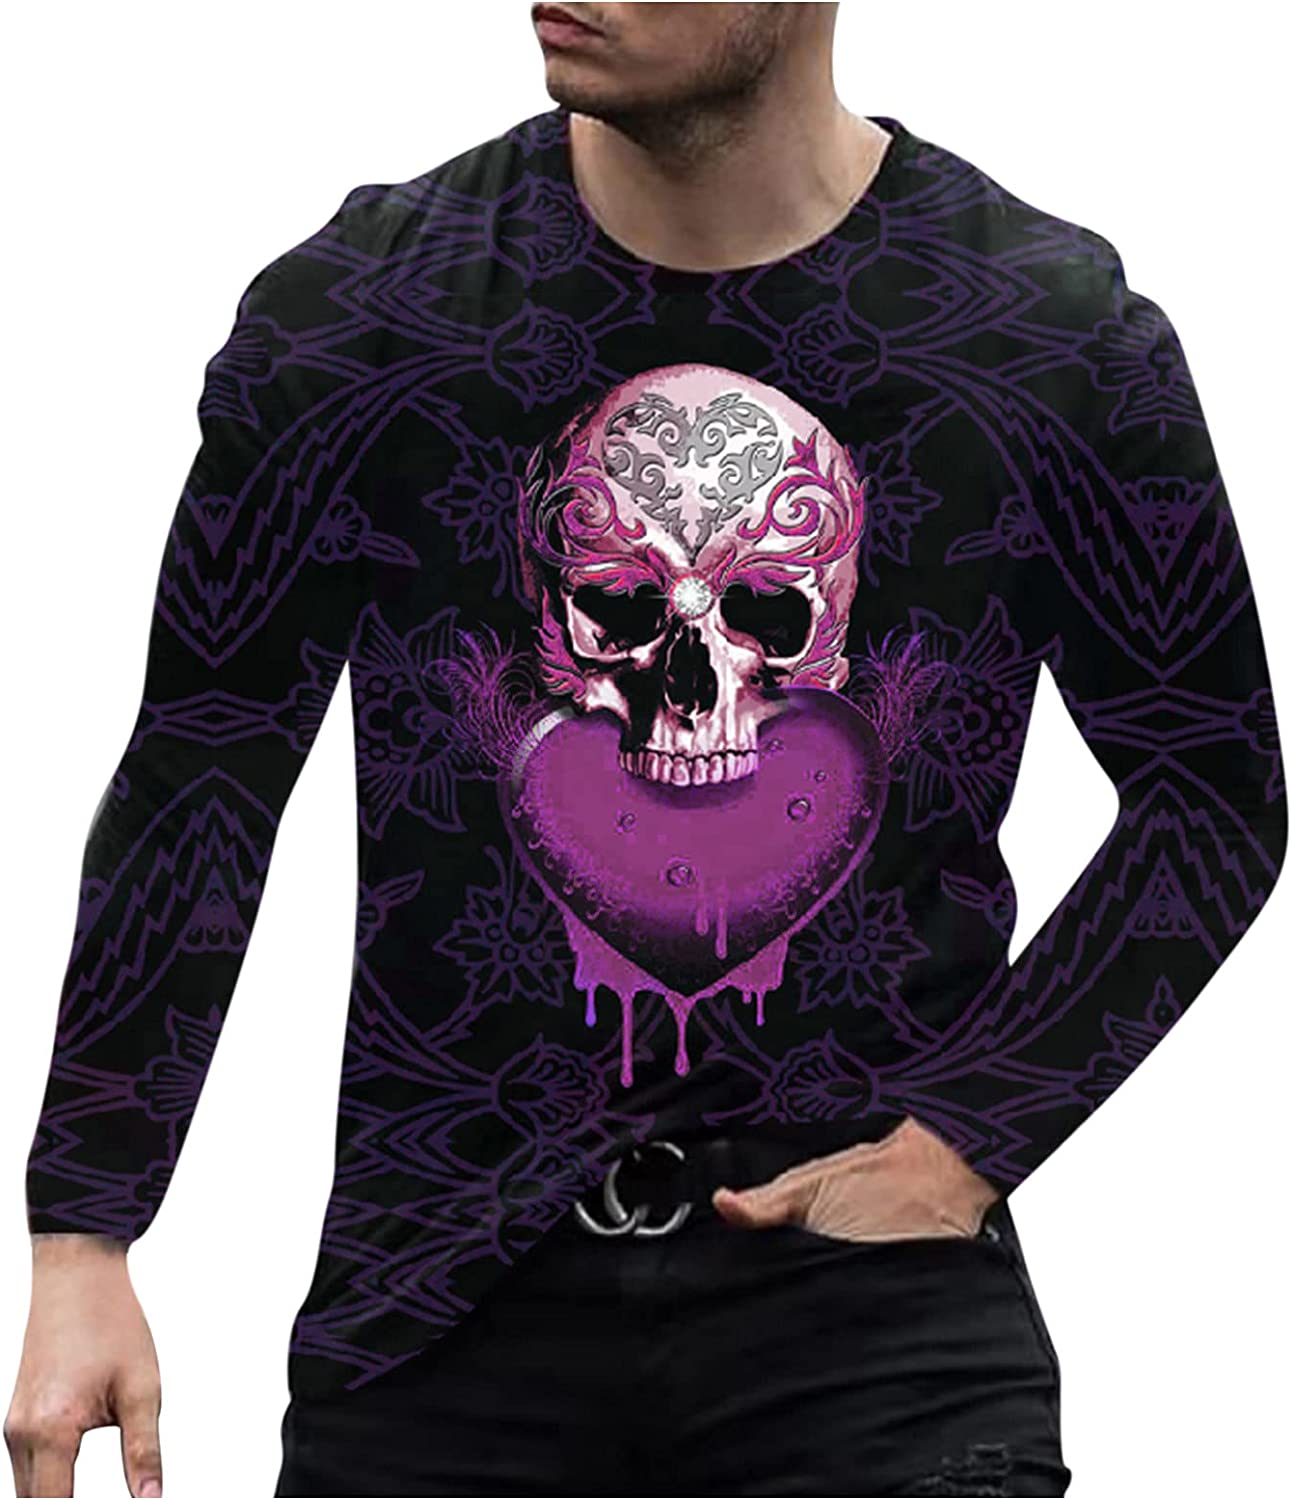 Long Sleeve Tee Shirts for Men Graphic Slim Casual O Neck Printed Outdoor T-Shirt Top Blouse to Wear with Jacket